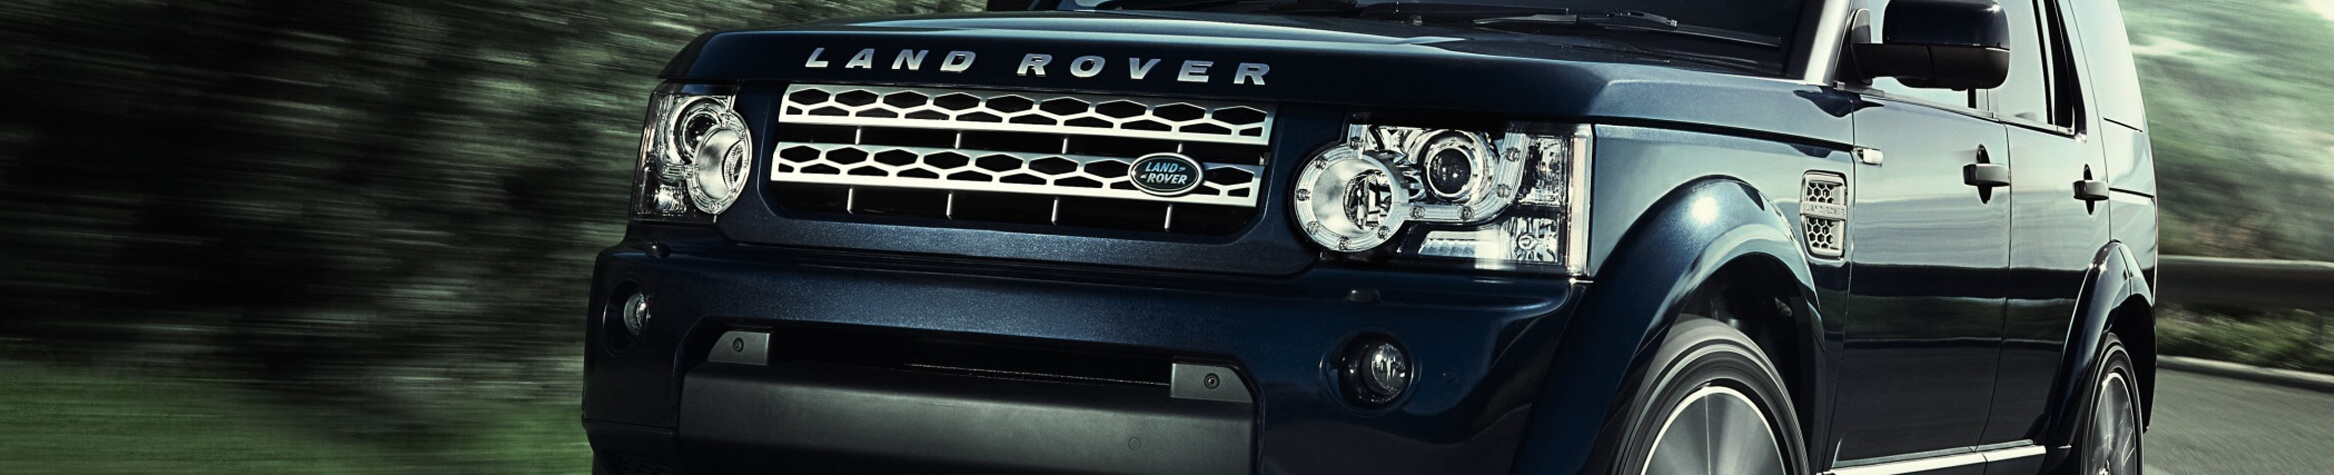 Used Land Rover Vehicles Banner